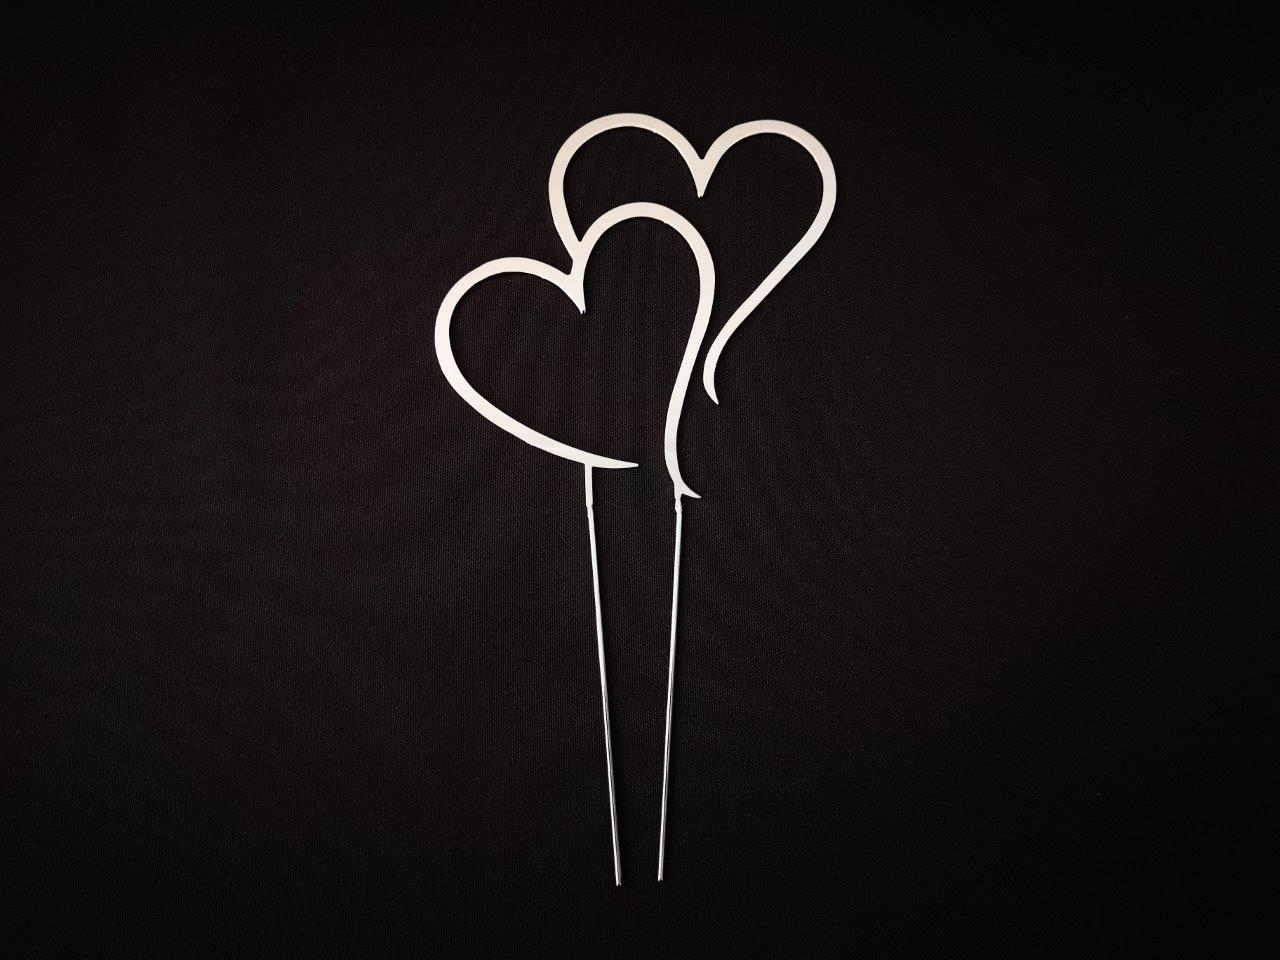 Large Silver Heart Wedding Cake Topper Large-Silver-Heart-Wedding-Cake-Topper---Large